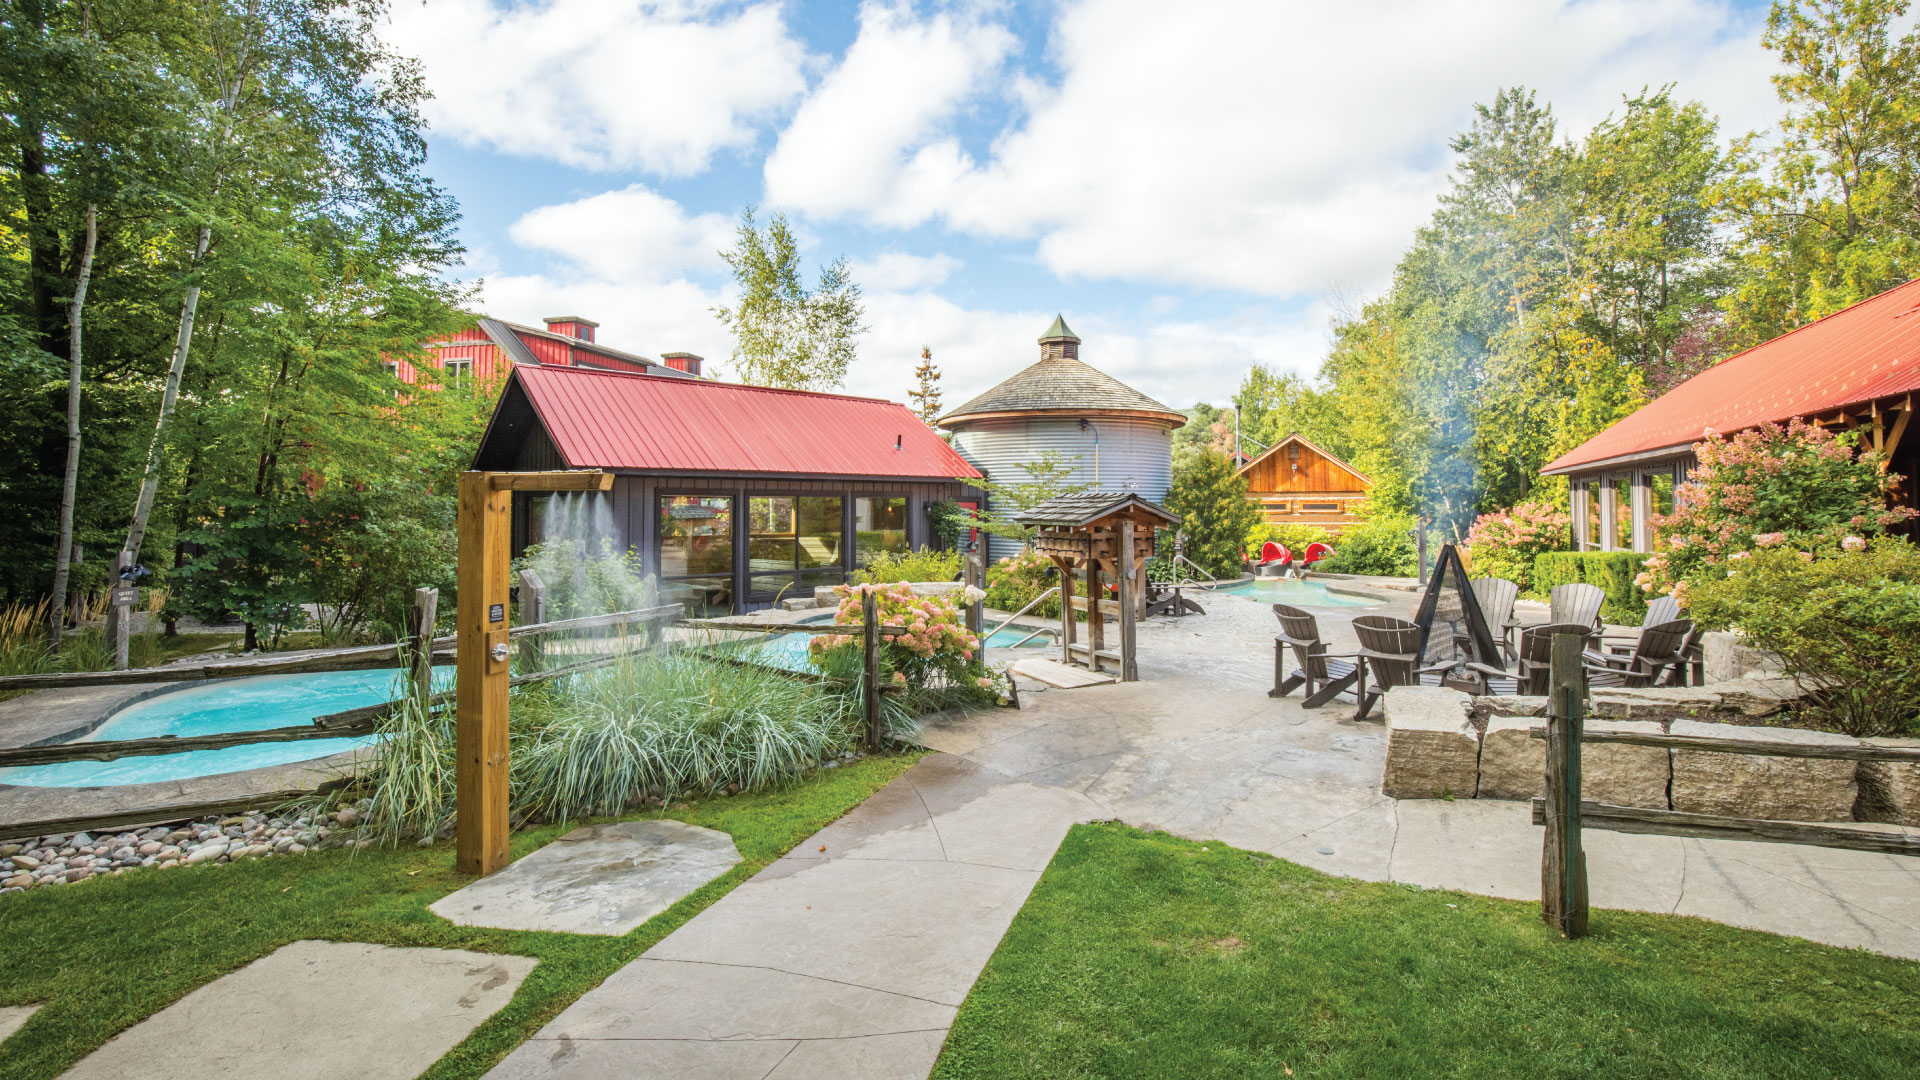 Summer day at Scandinave Spa Blue Mountain